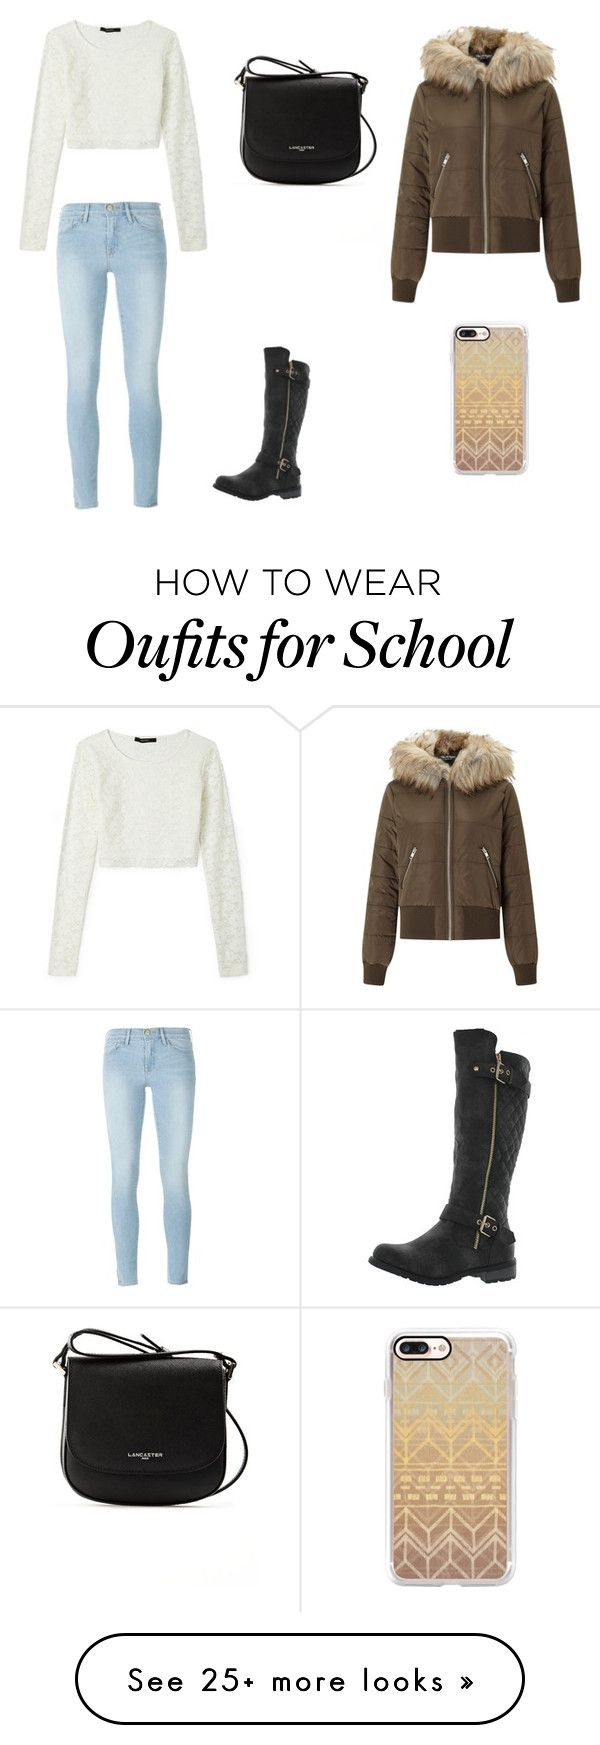 """""""School in Winter"""" by juliasunny-1 on Polyvore featuring Miss Selfridge, Frame, Forever Link, Forever 21, Lancaster and Casetify"""